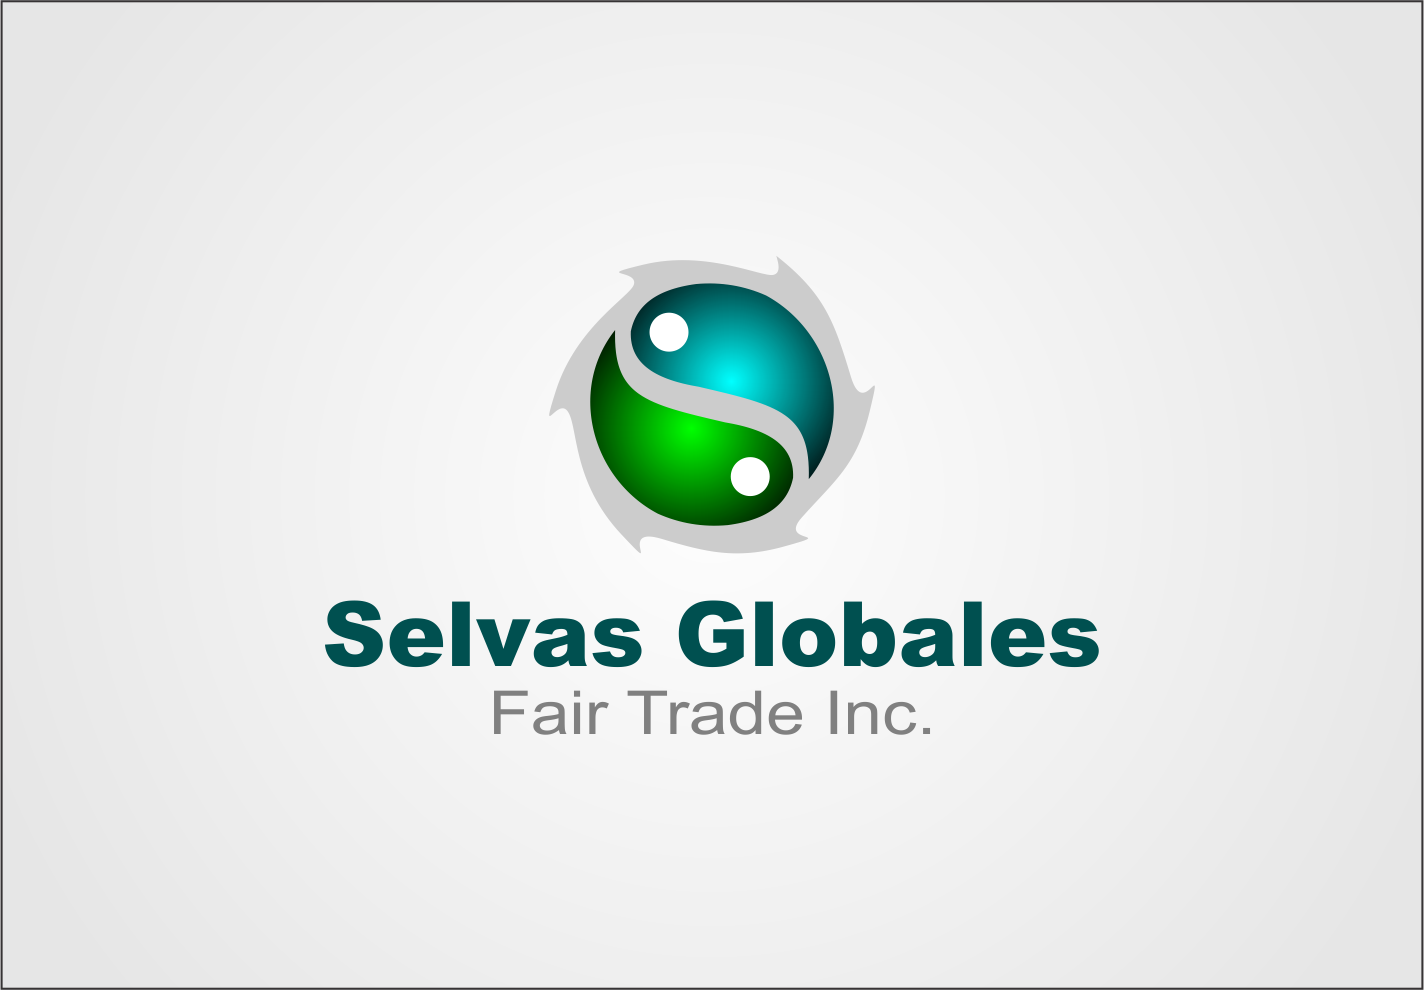 Logo Design by Agus Martoyo - Entry No. 67 in the Logo Design Contest Captivating Logo Design for Selvas Globales Fair Trade Inc..